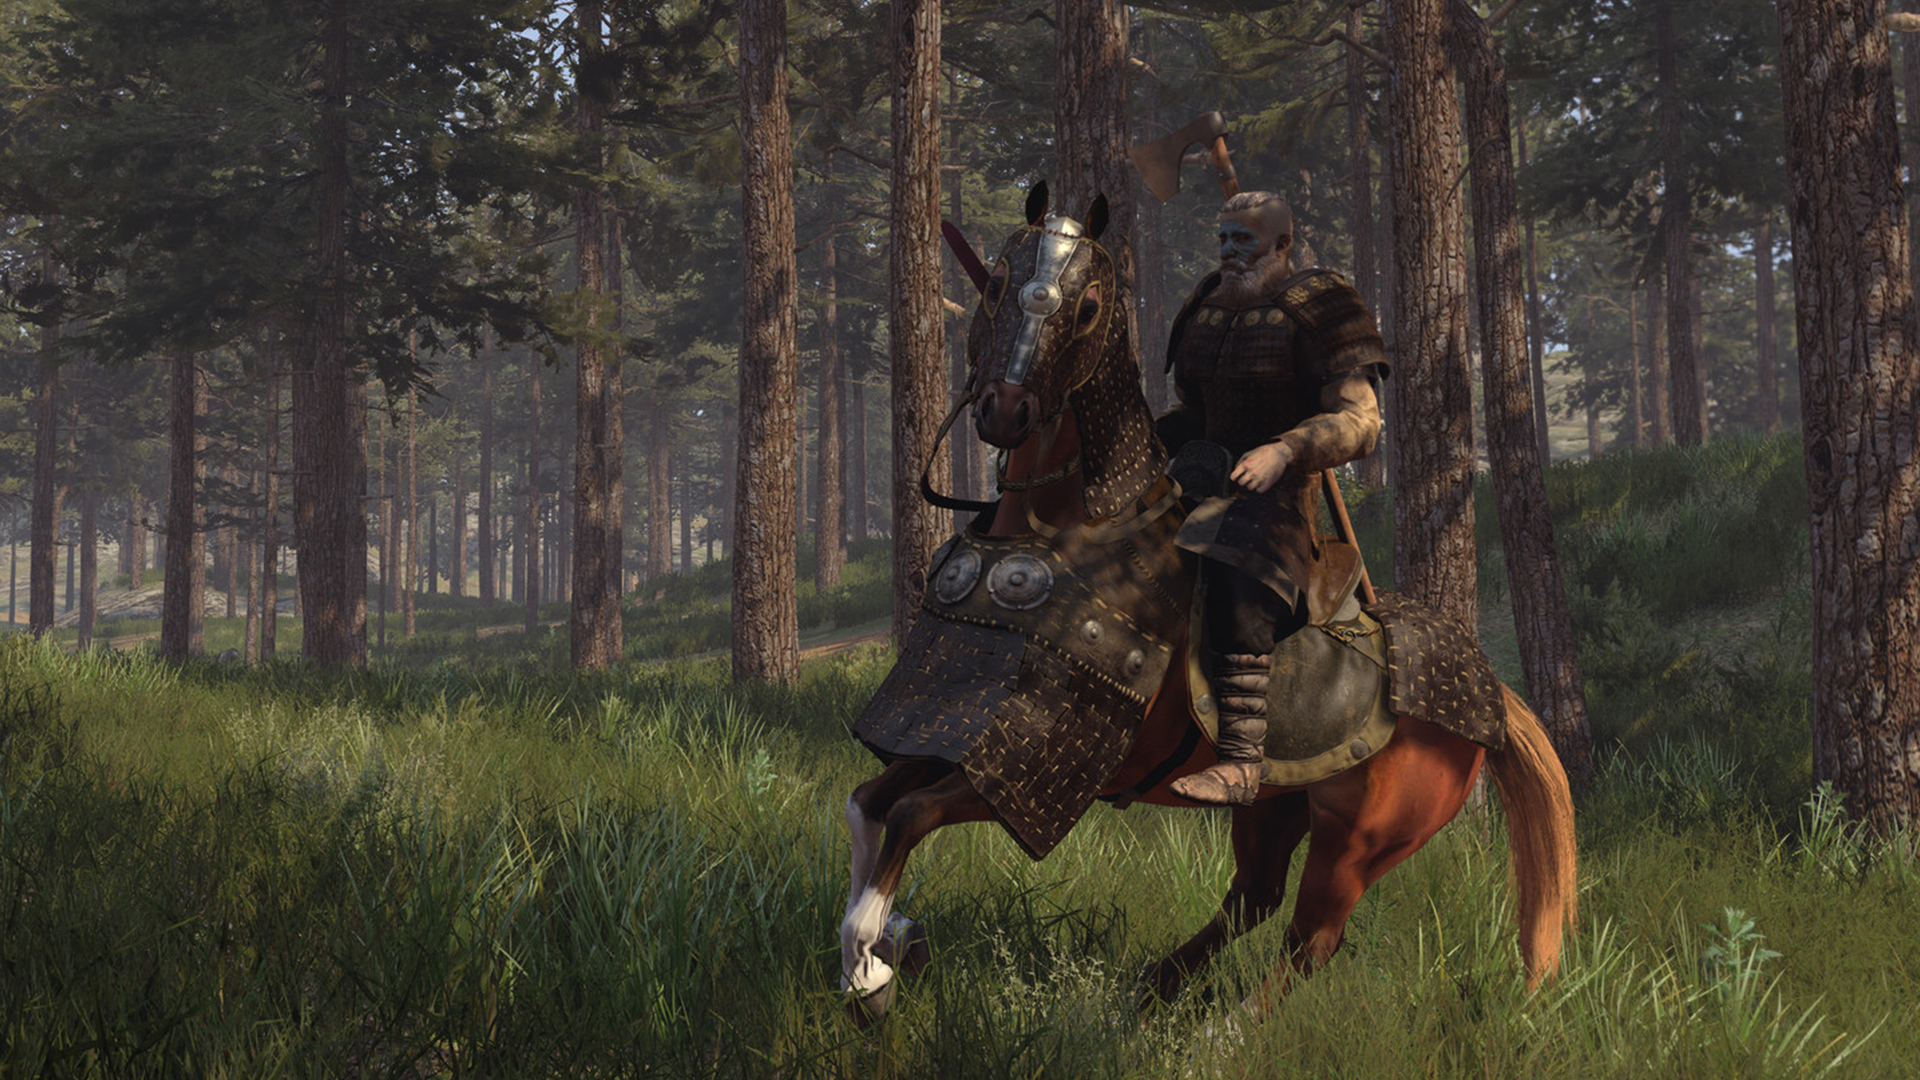 Mount Blade 2 Bannerlord Lead Says The Studio Is Working 80